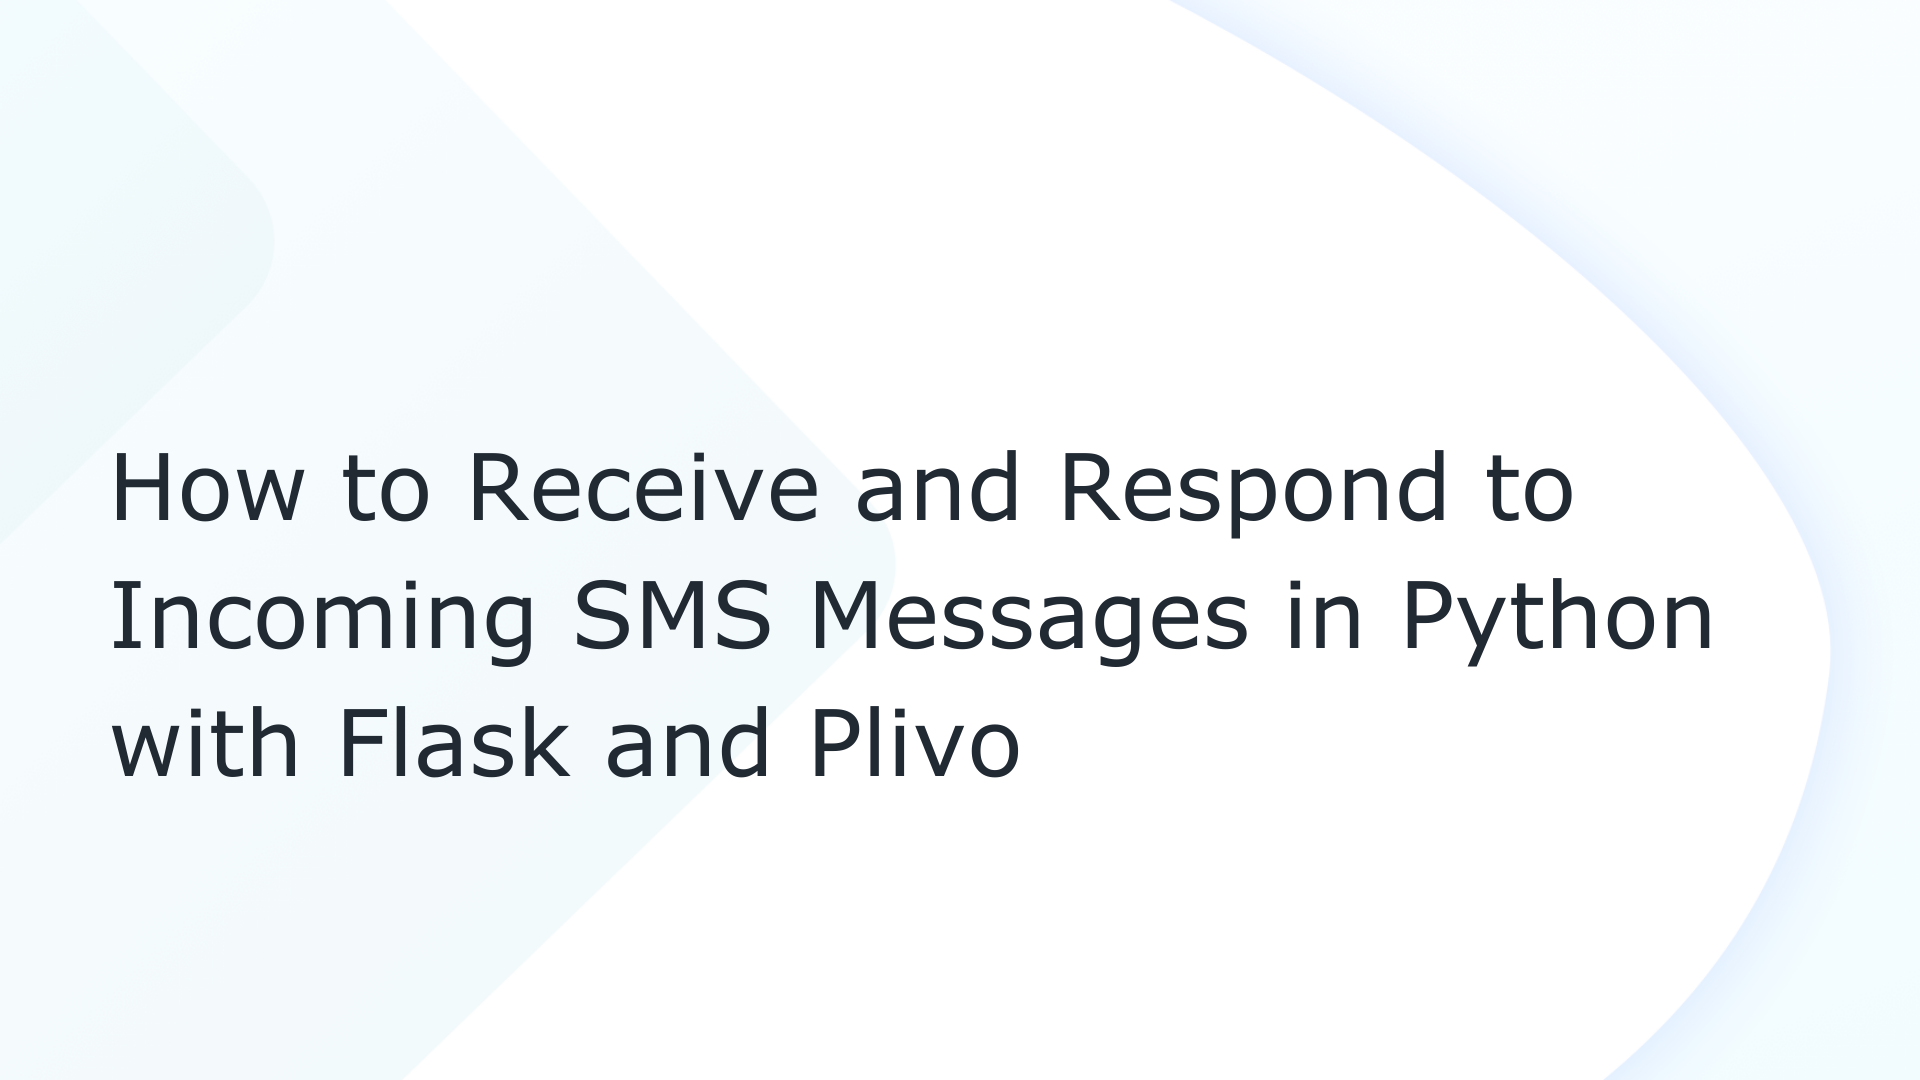 How to Receive and Respond to Incoming SMS Messages in Python with Flask and Plivo